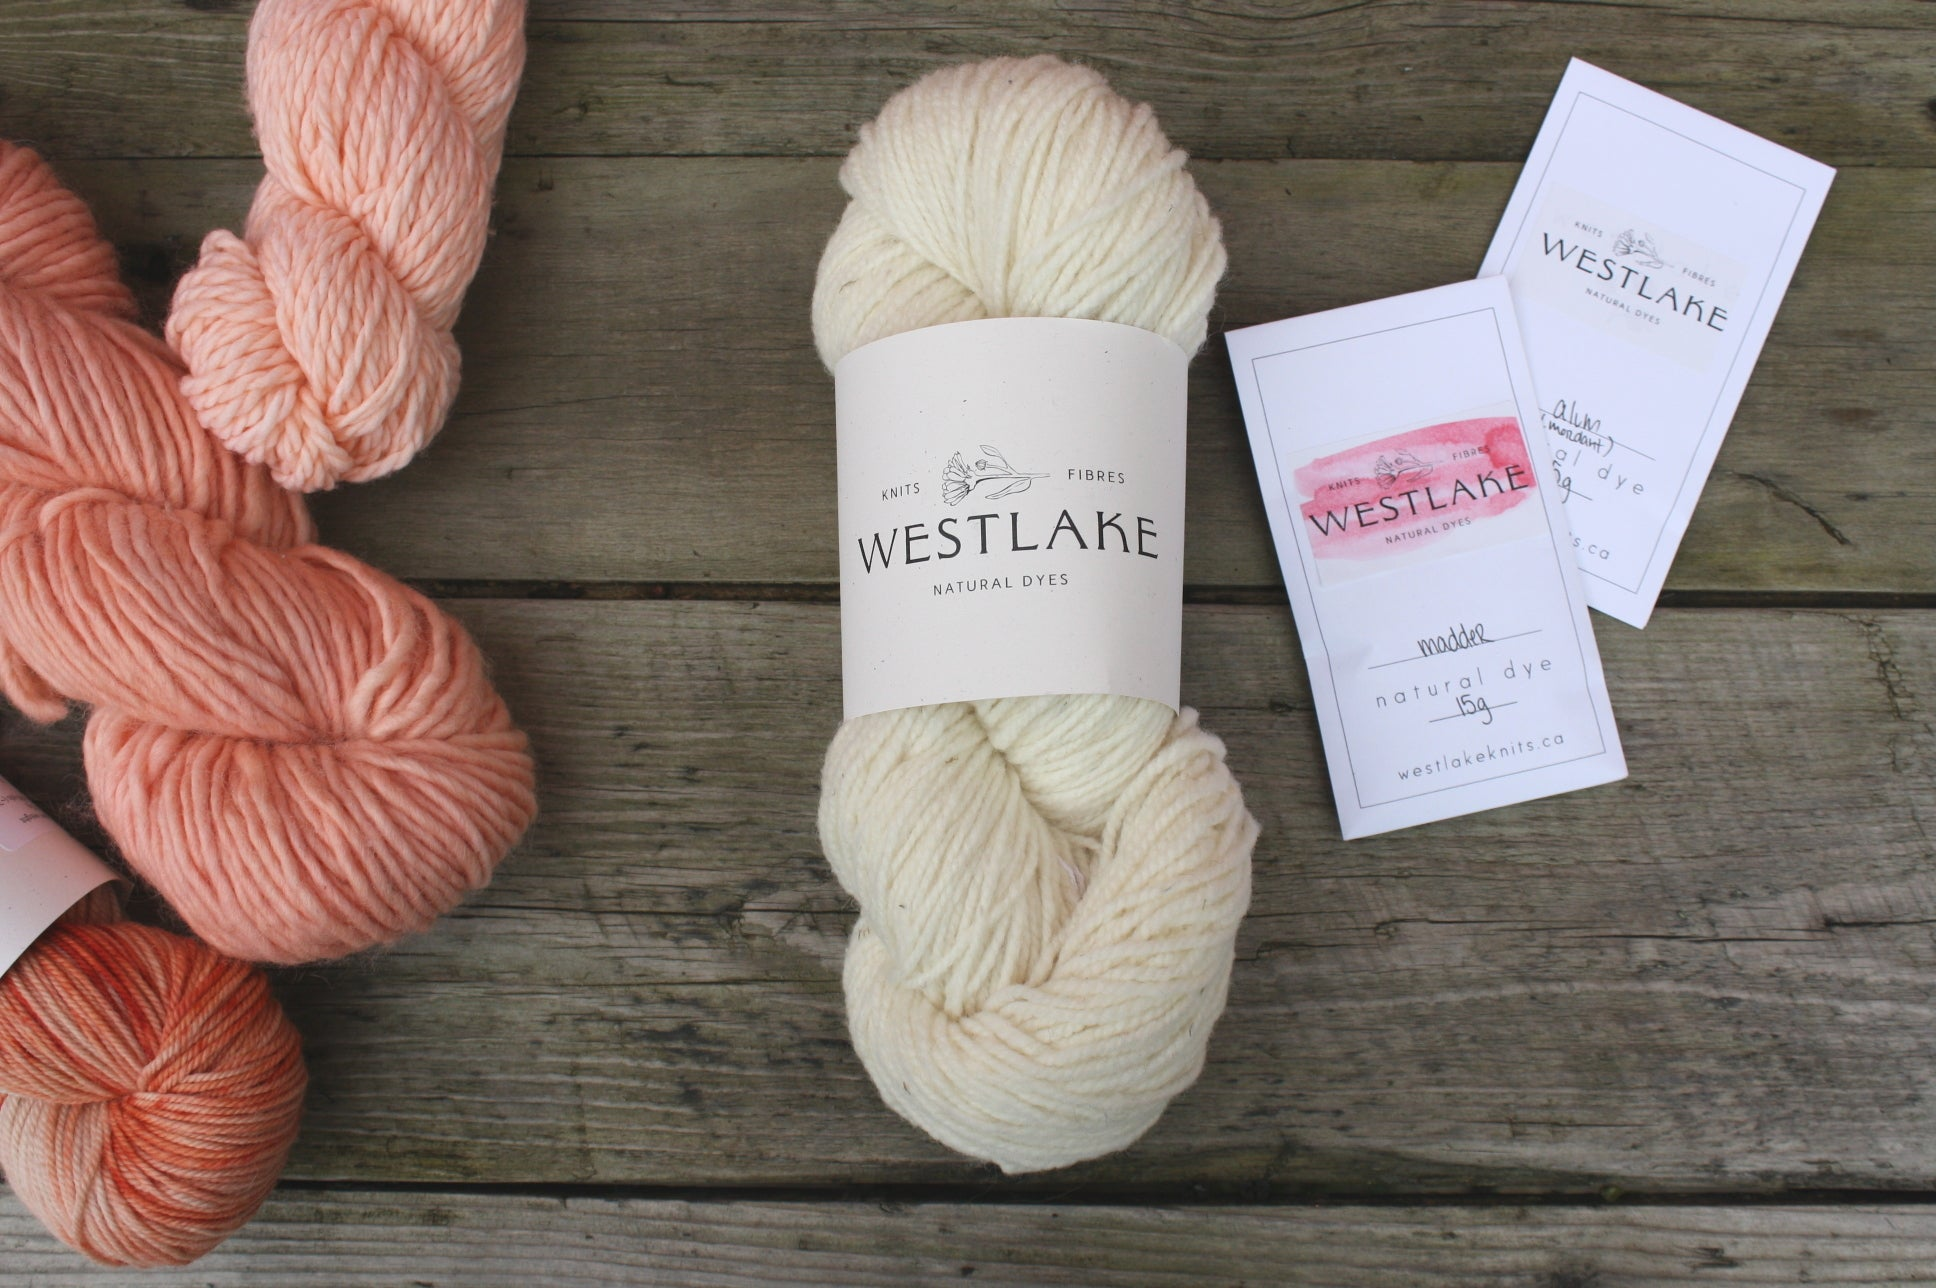 Westlake Natural Dyeing Kit, dye yarn with plant based colour